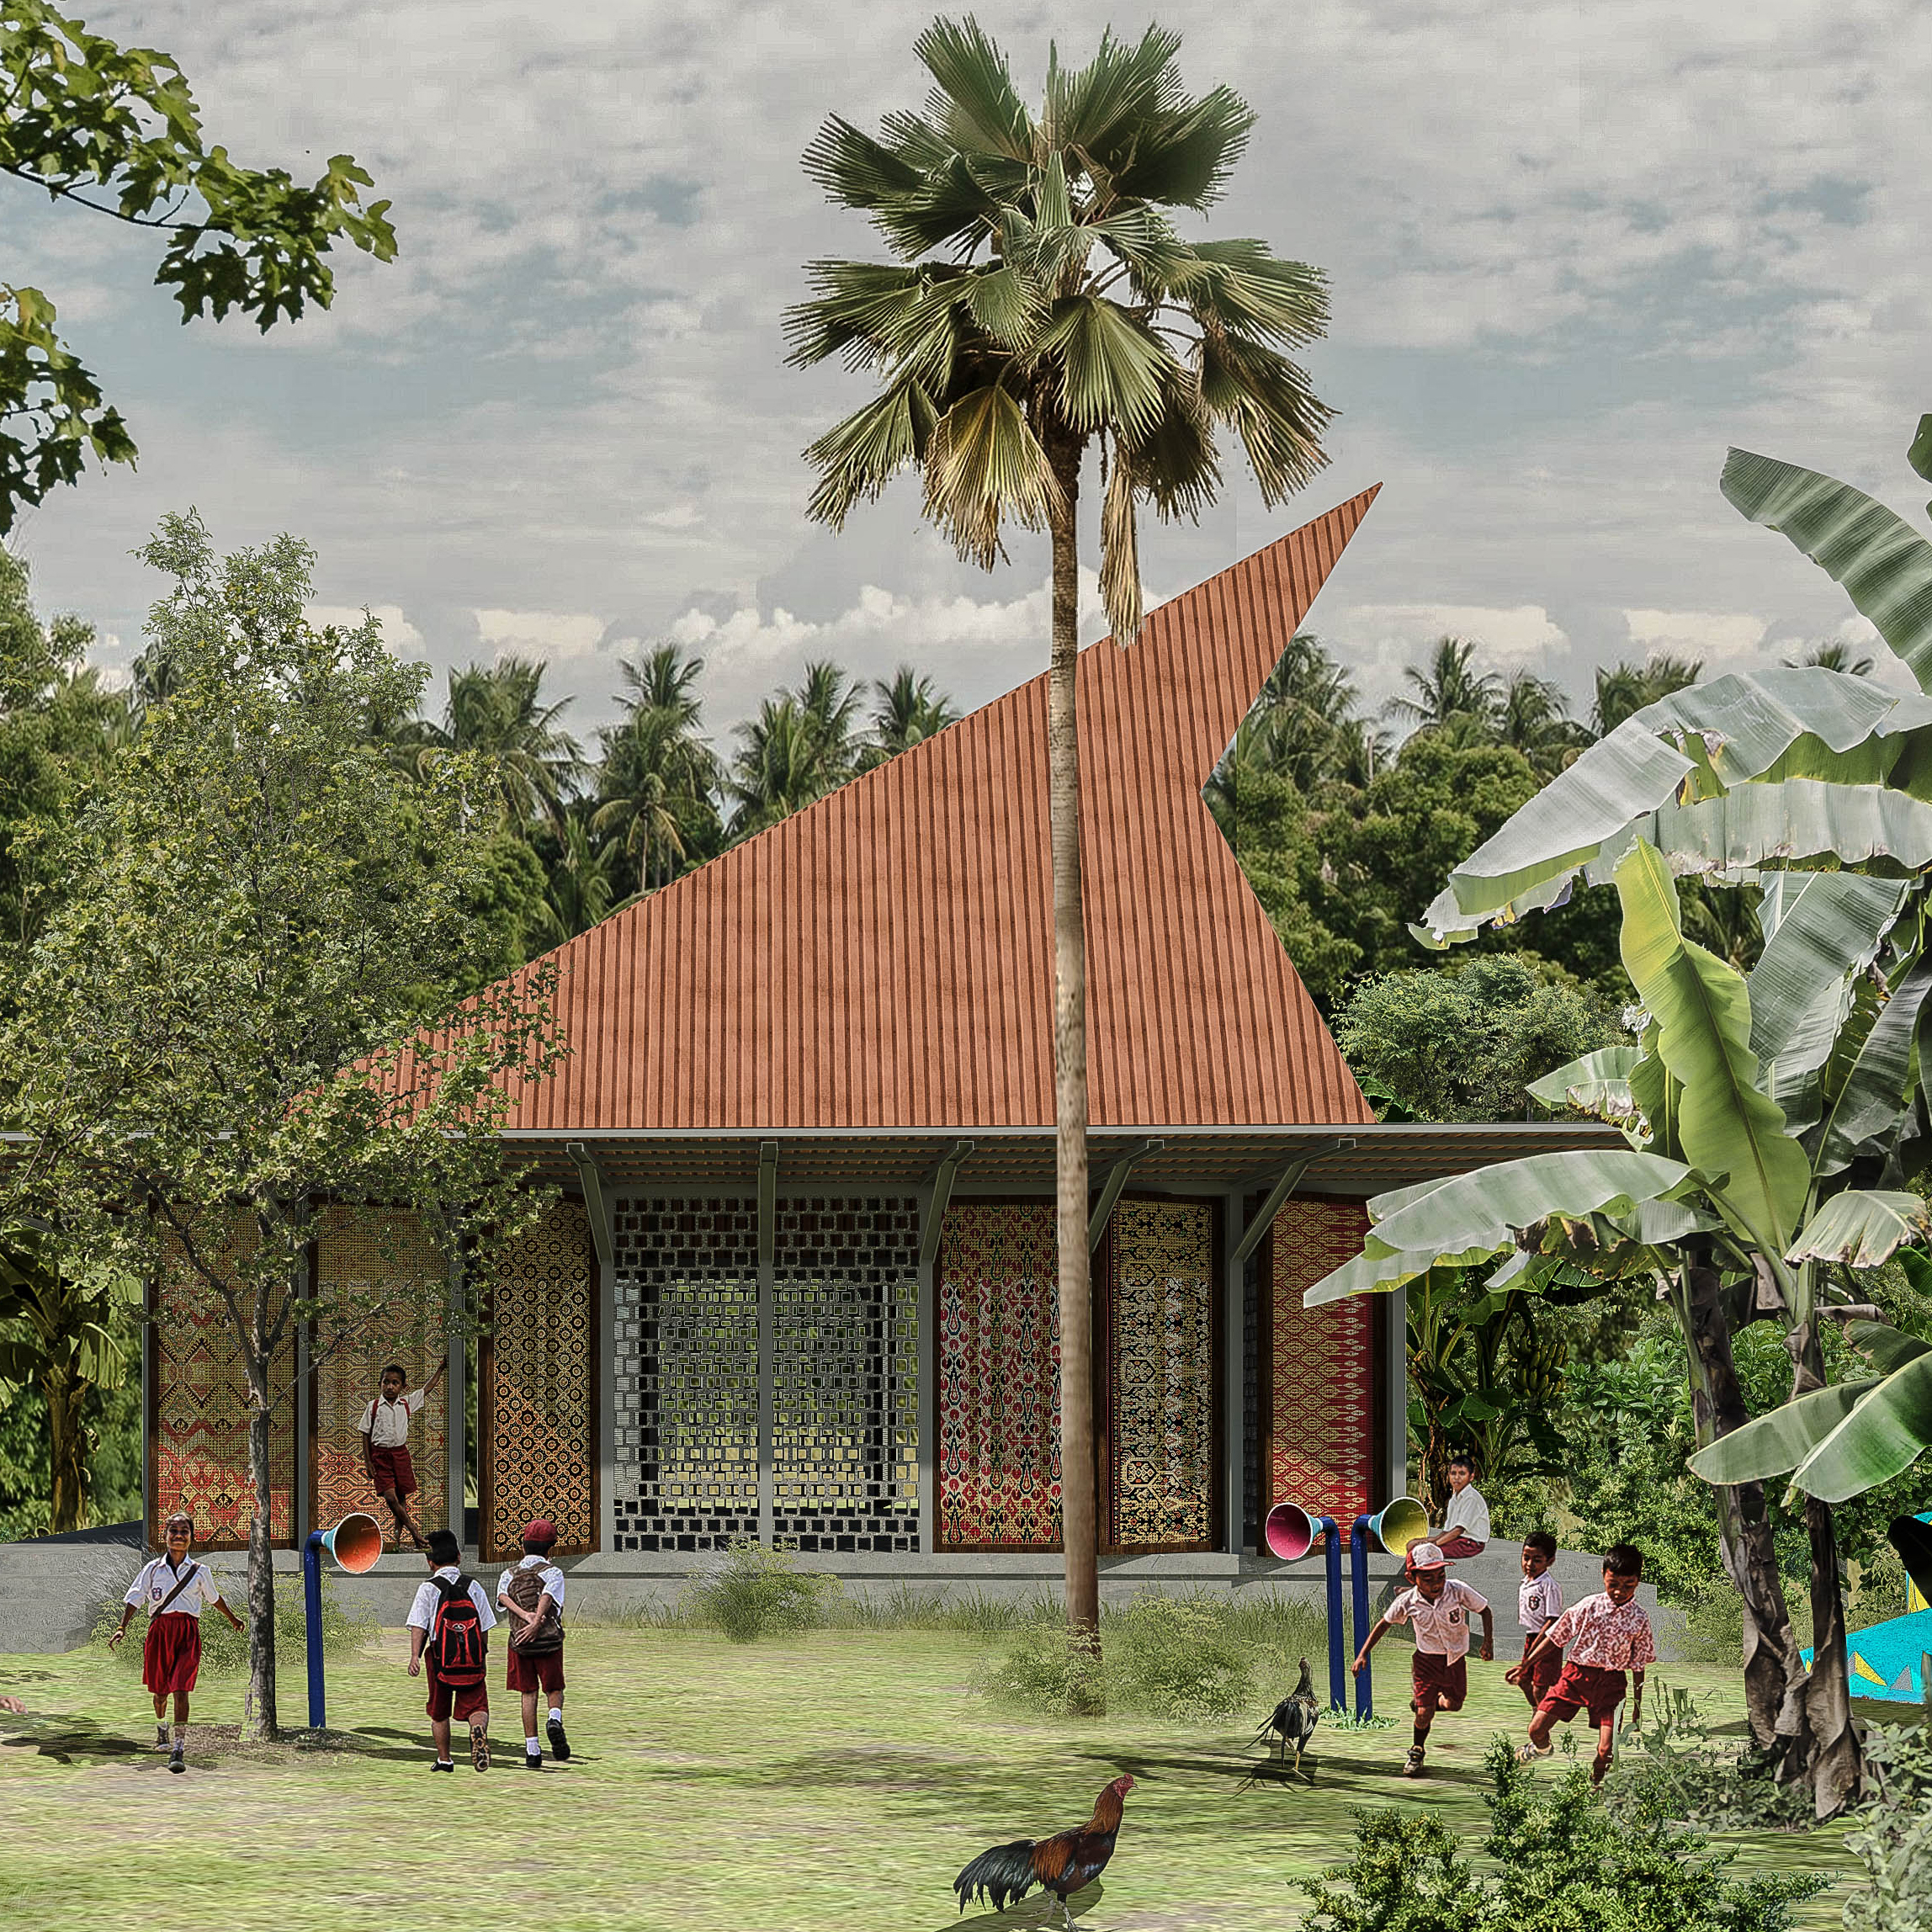 Village school   Sumba, Indonesia  A scalable prototype providing a new learning environment through sustainable design in climatically sensitive regions.